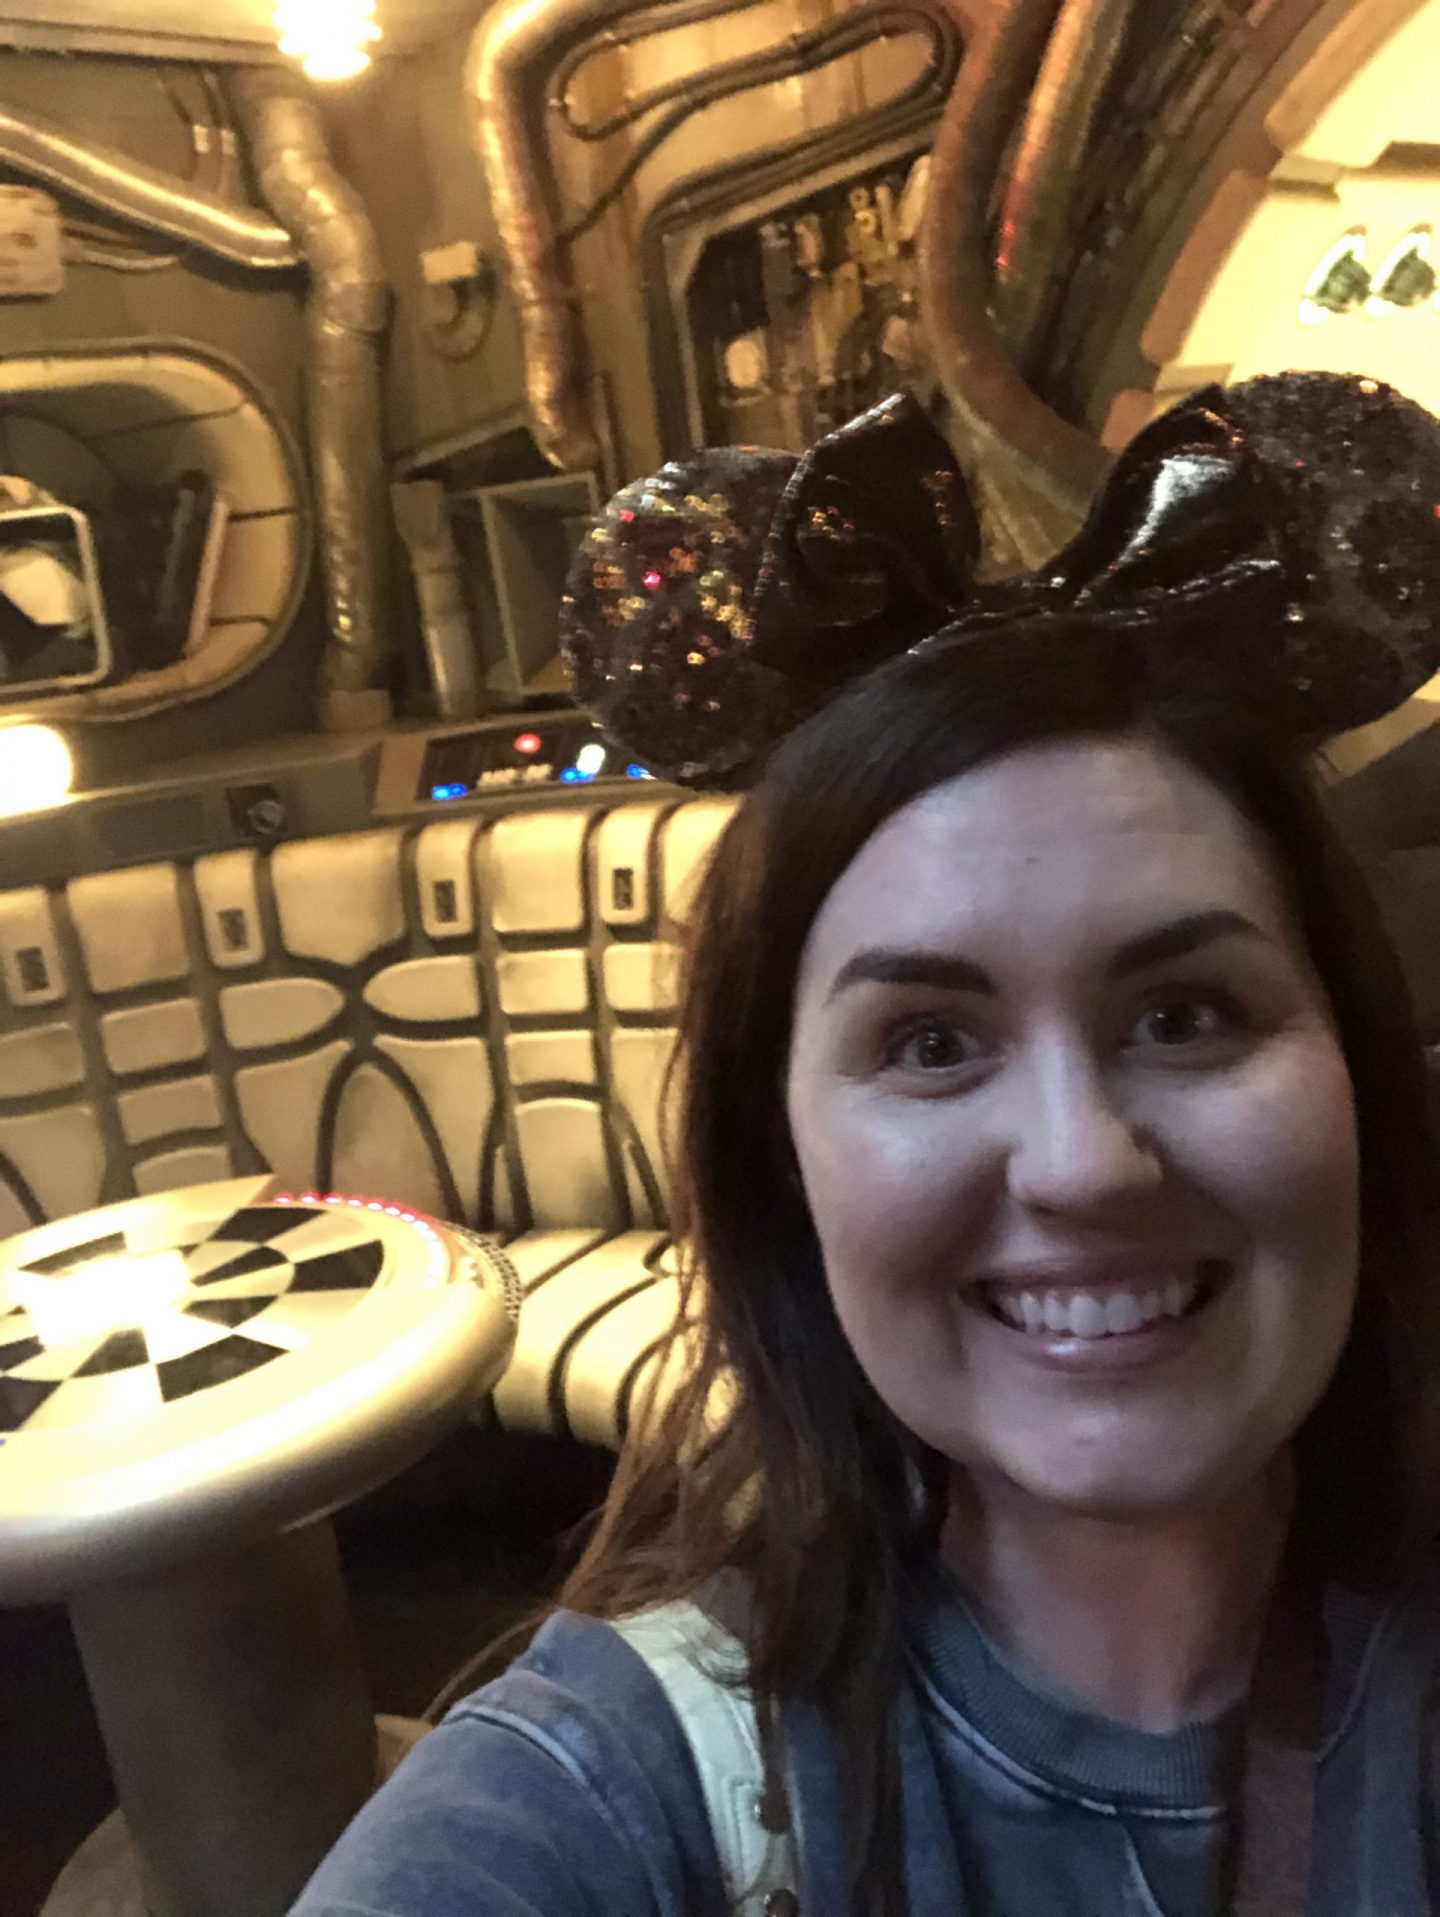 NC blogger Rebecca Lately shares her Hollywood Studios day at Walt Disney World. Check out all the rides and food they loved!